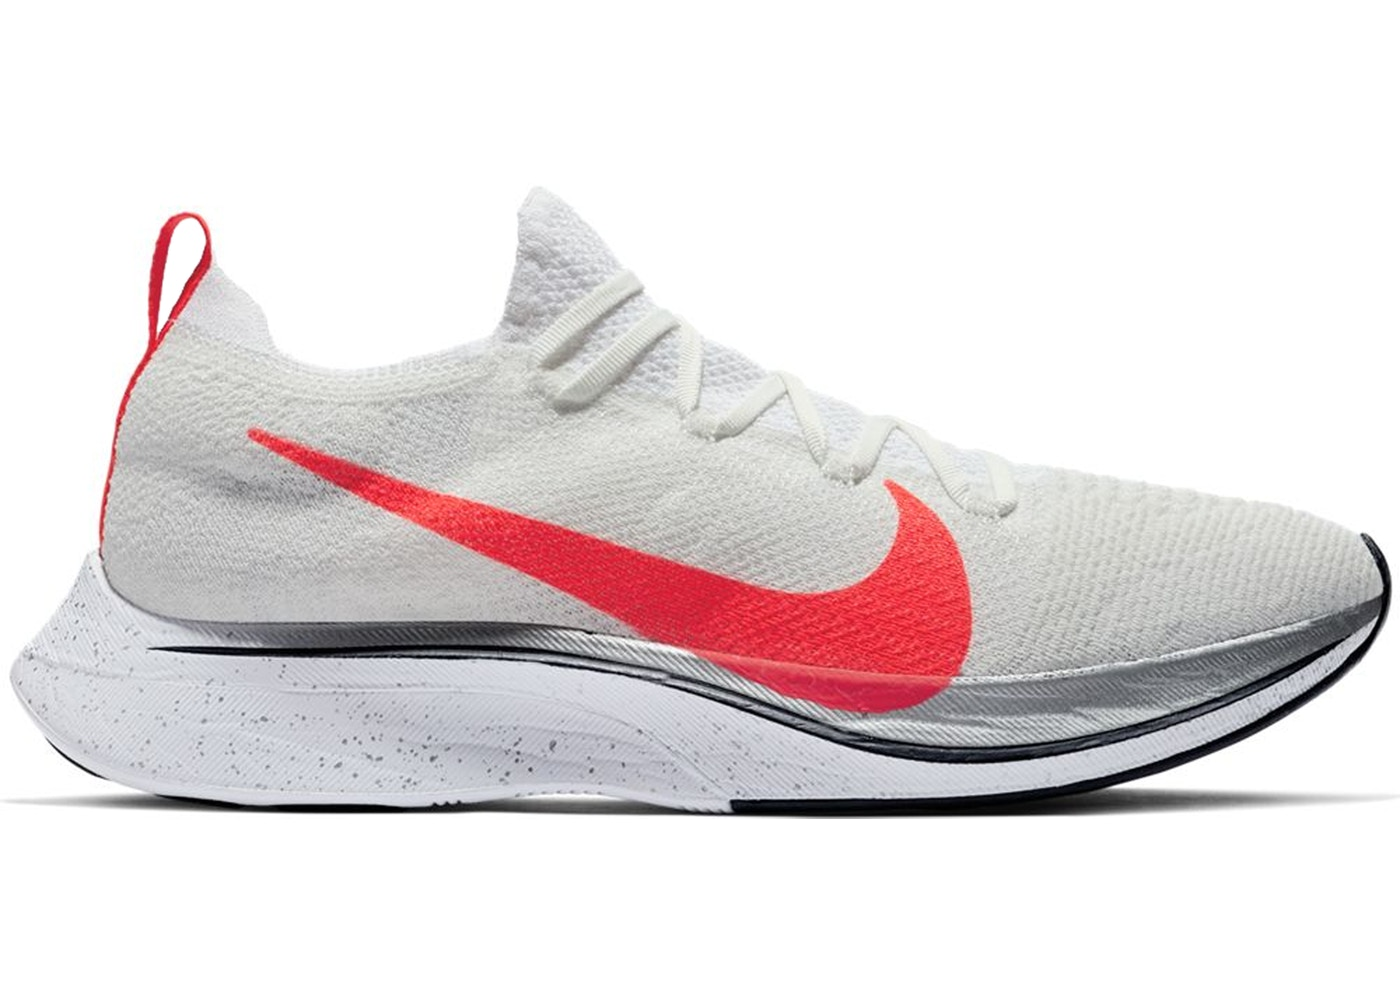 c6a37e4d88 Now Available: Nike VaporFly 4% Flyknit